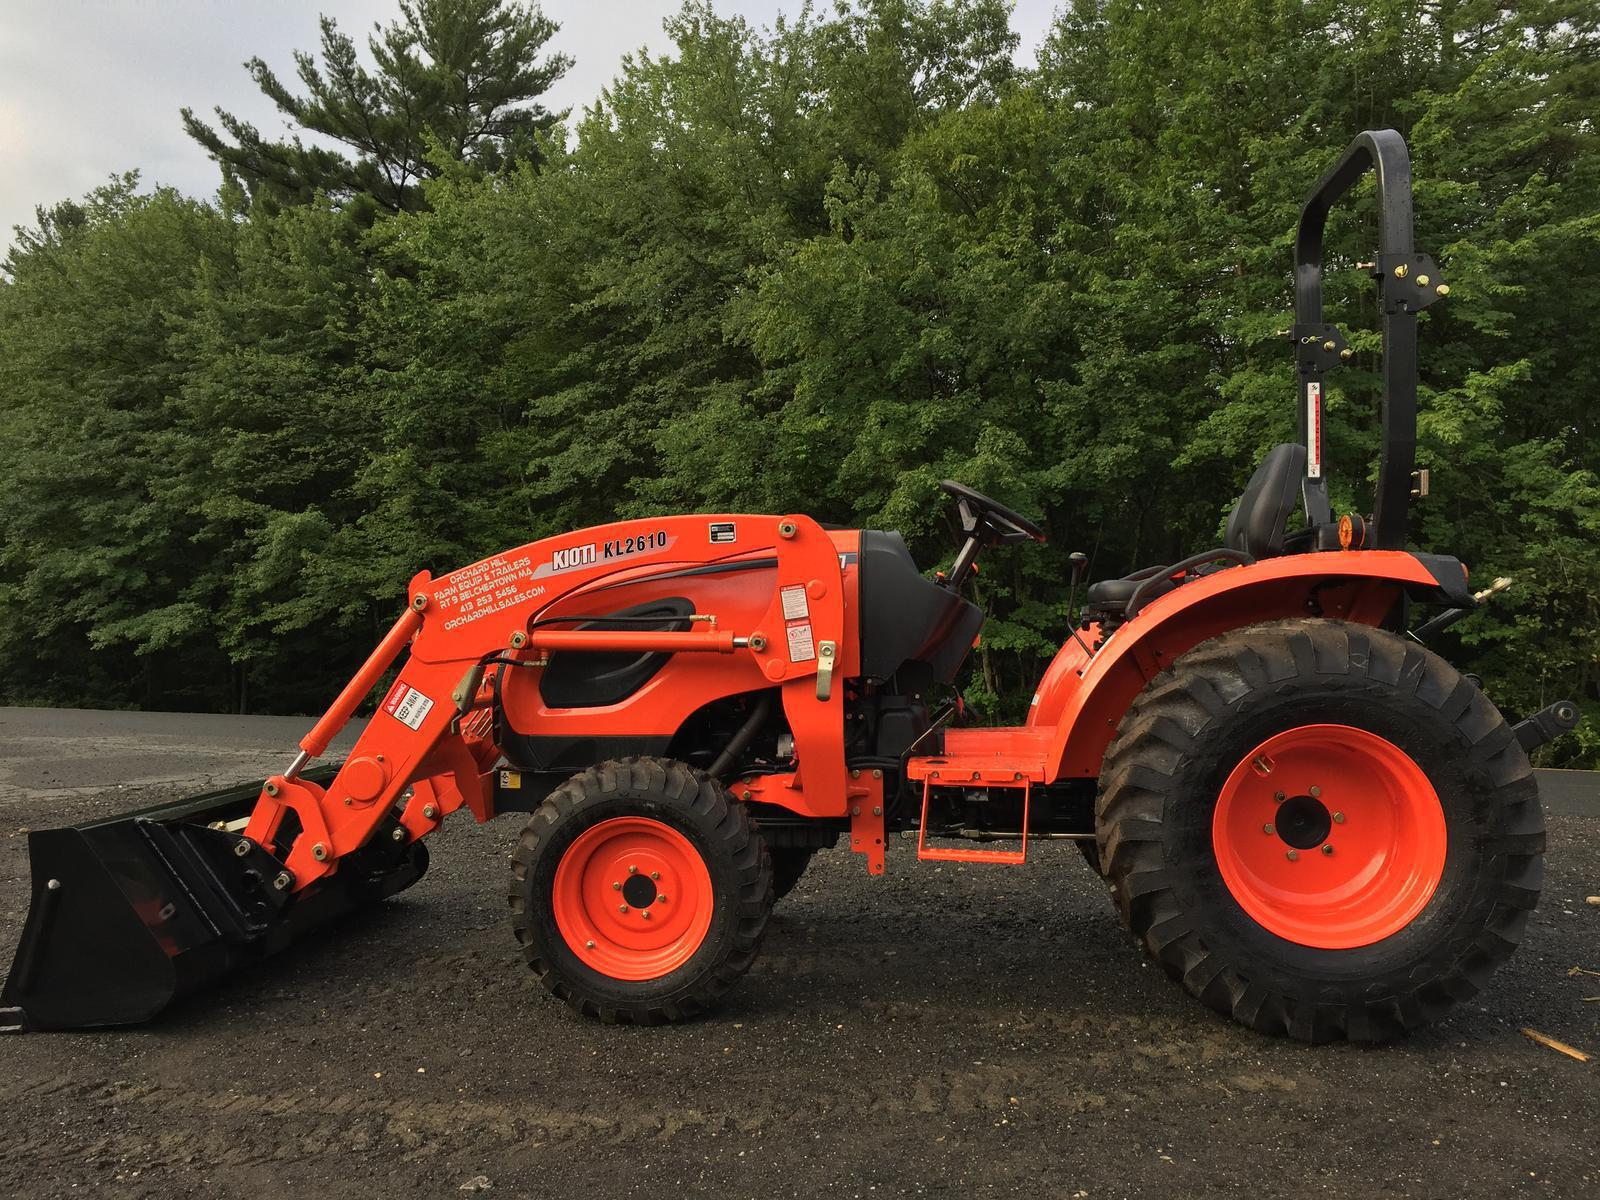 Kioti Parts Catalog Engine Diagram Manual Tractor Loader For Sale In Belchertown Ma Orchard Hill Farm Equipment 1600x1200